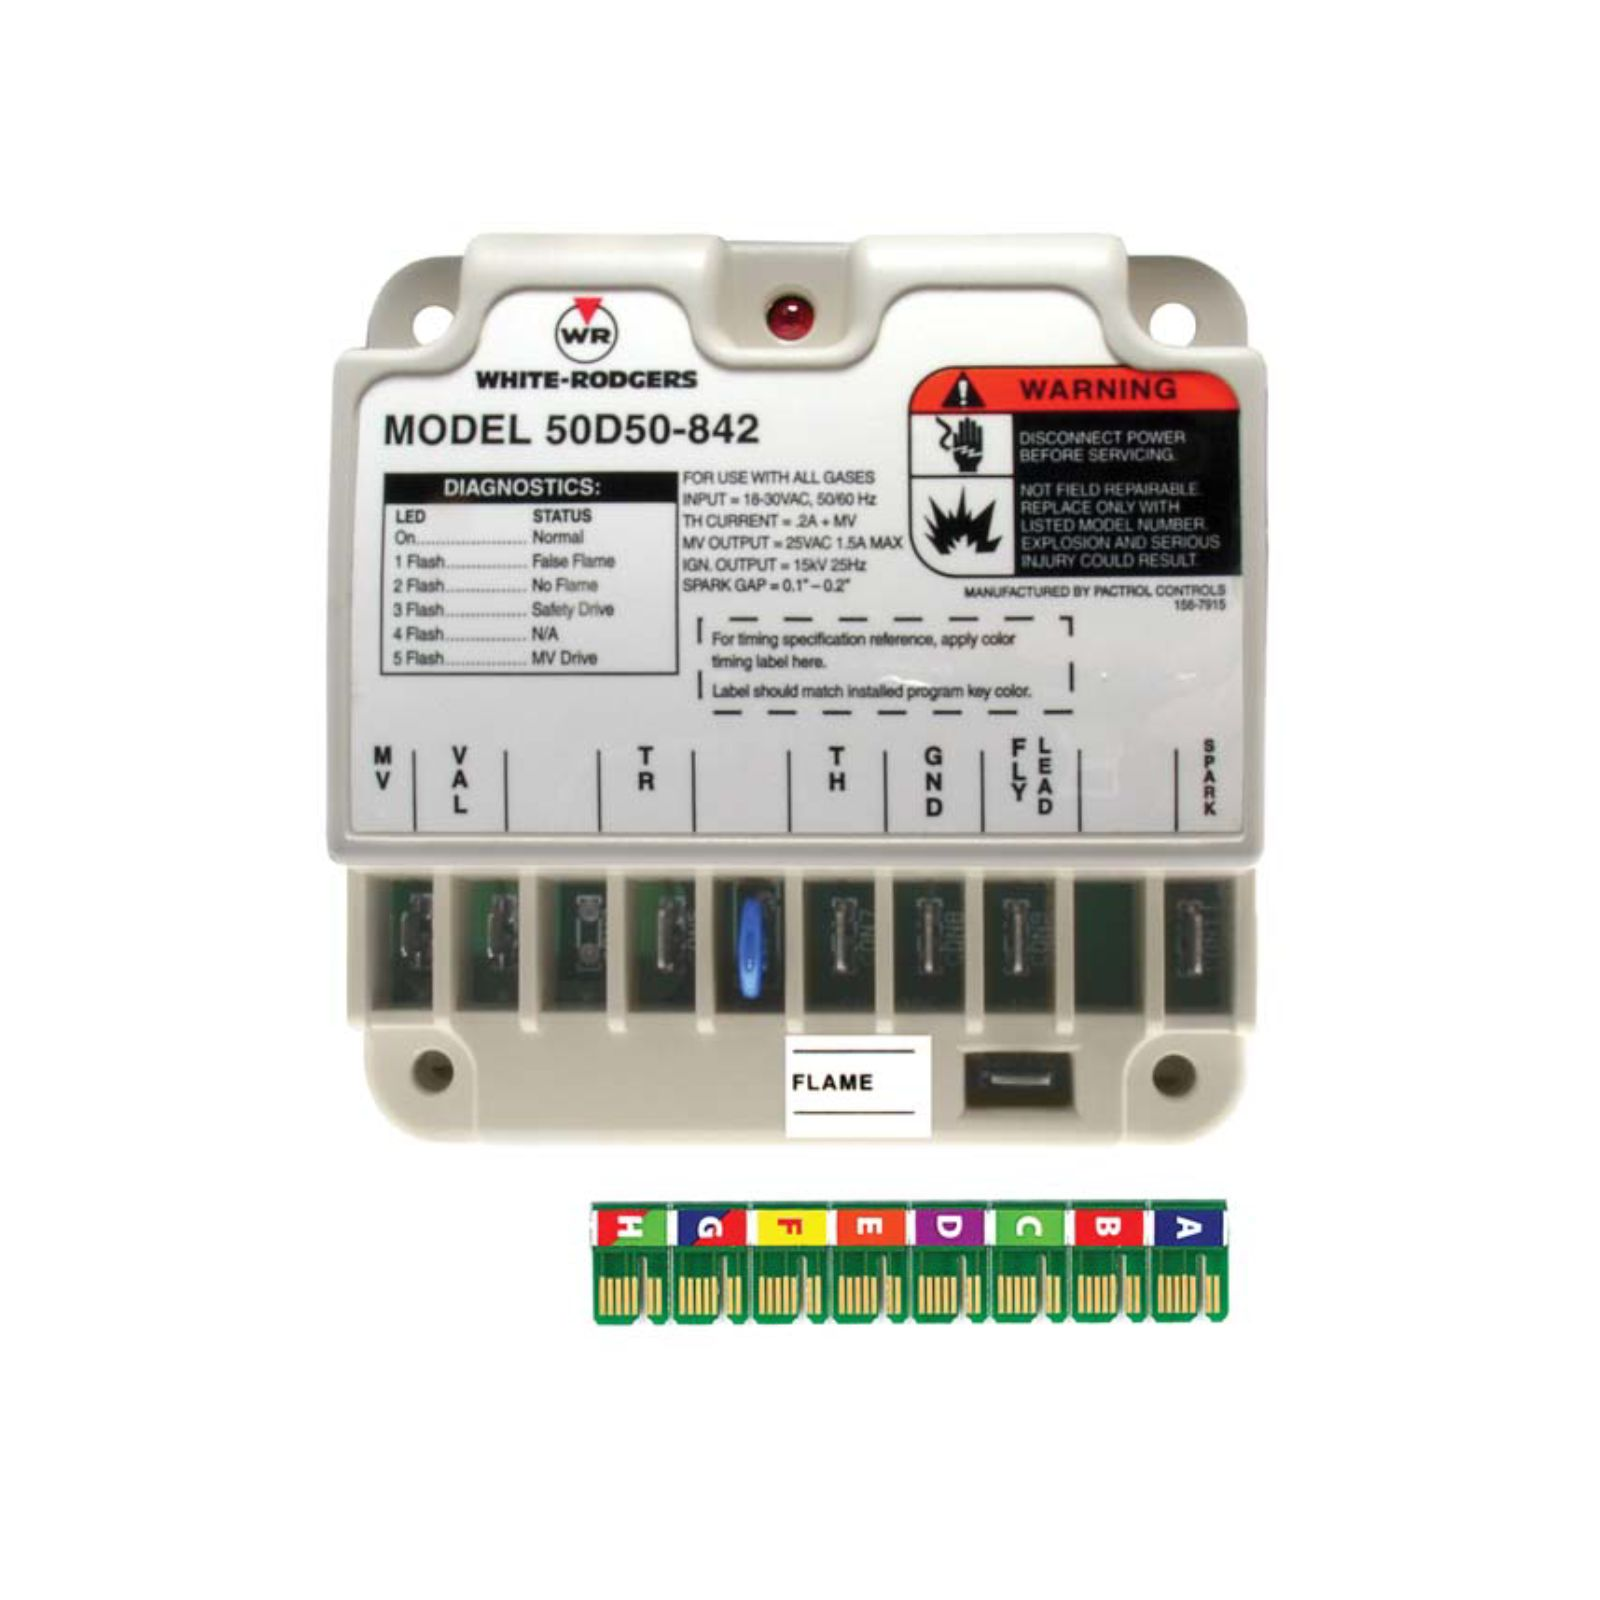 White-Rodgers 50D50-842 - White-Rogers Universal Direct Spark Ignition Control For All Gases